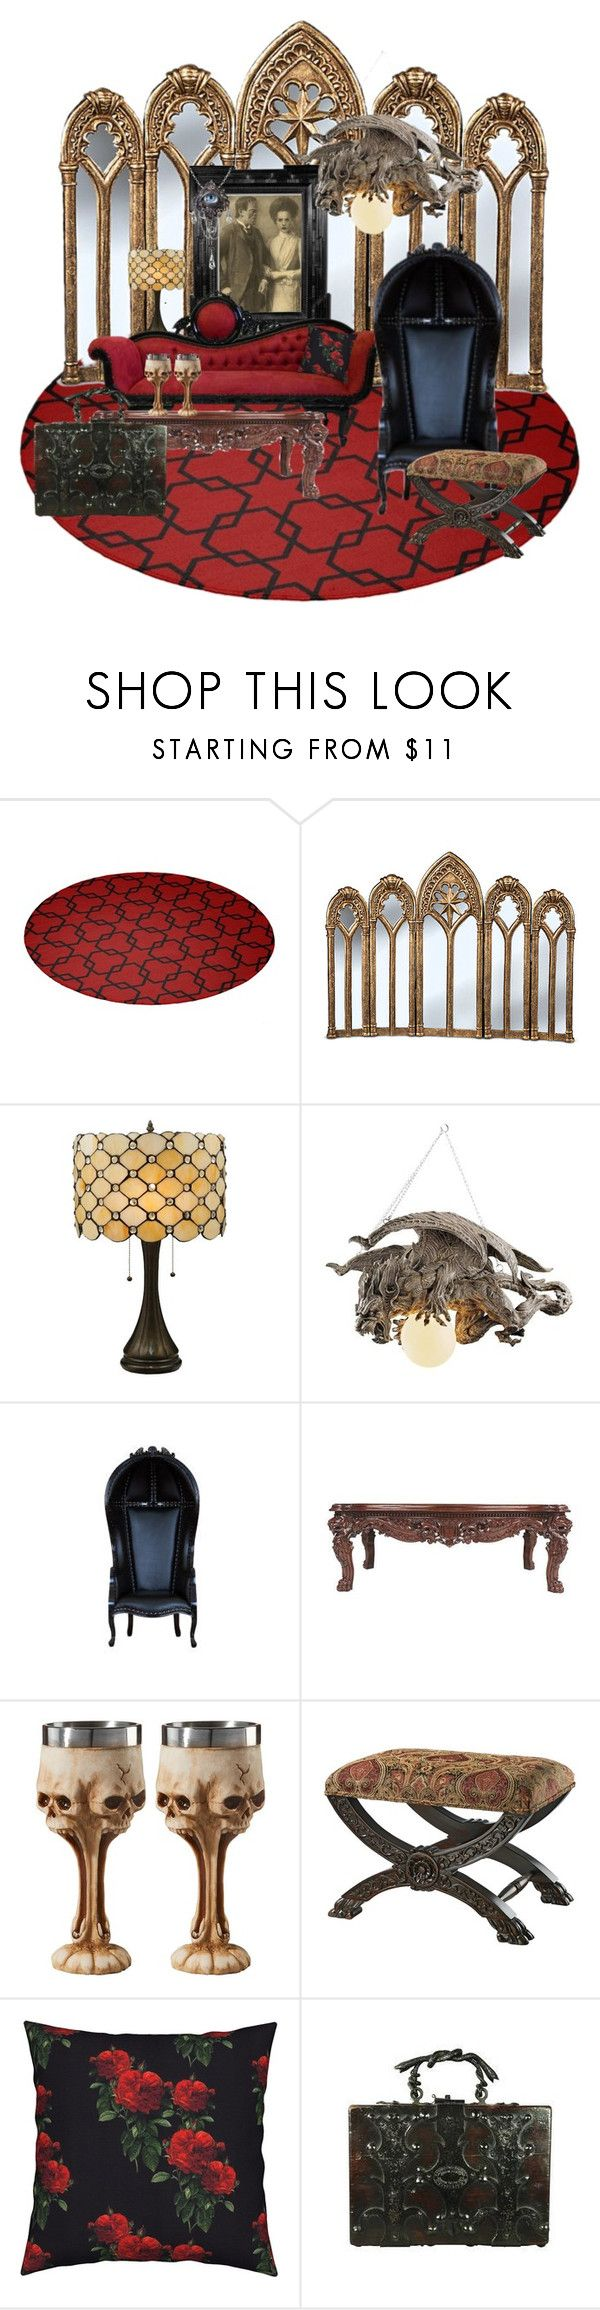 """""""Halloween brings out the Goth in Me"""" by dreamcatcher51 ❤ liked on Polyvore featuring interior, interiors, interior design, home, home decor, interior decorating, Improvements, Terry Fan, Linda Horn and goth"""